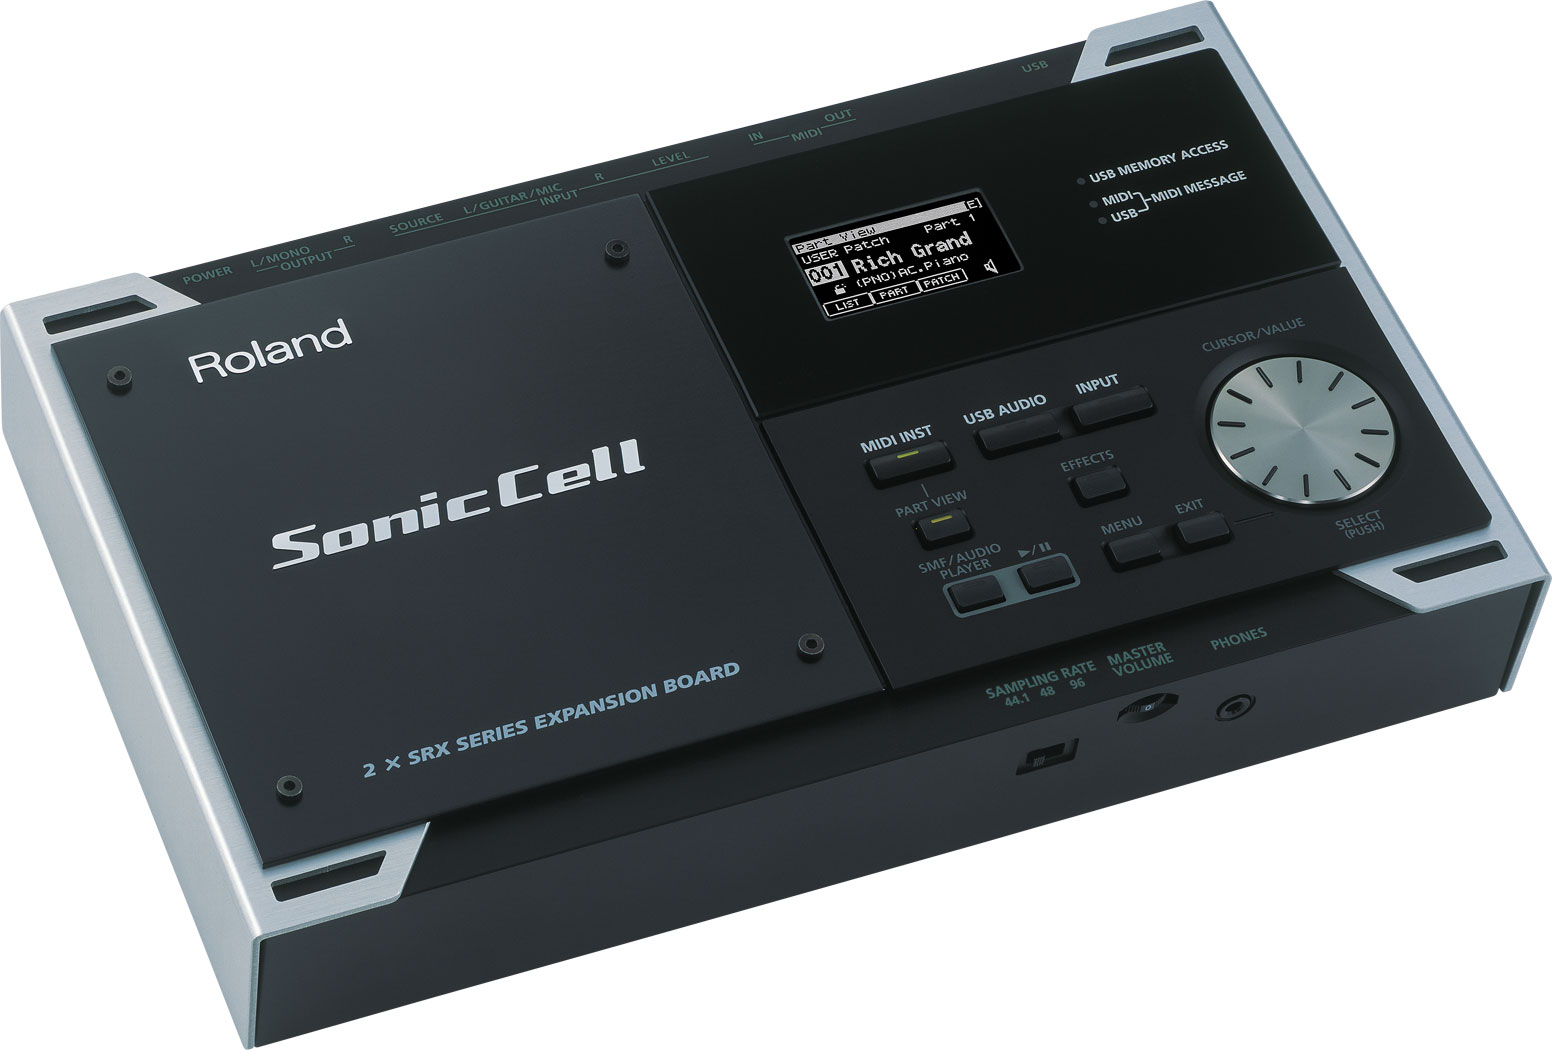 Roland - SonicCell | Expandable Synthesizer Module with